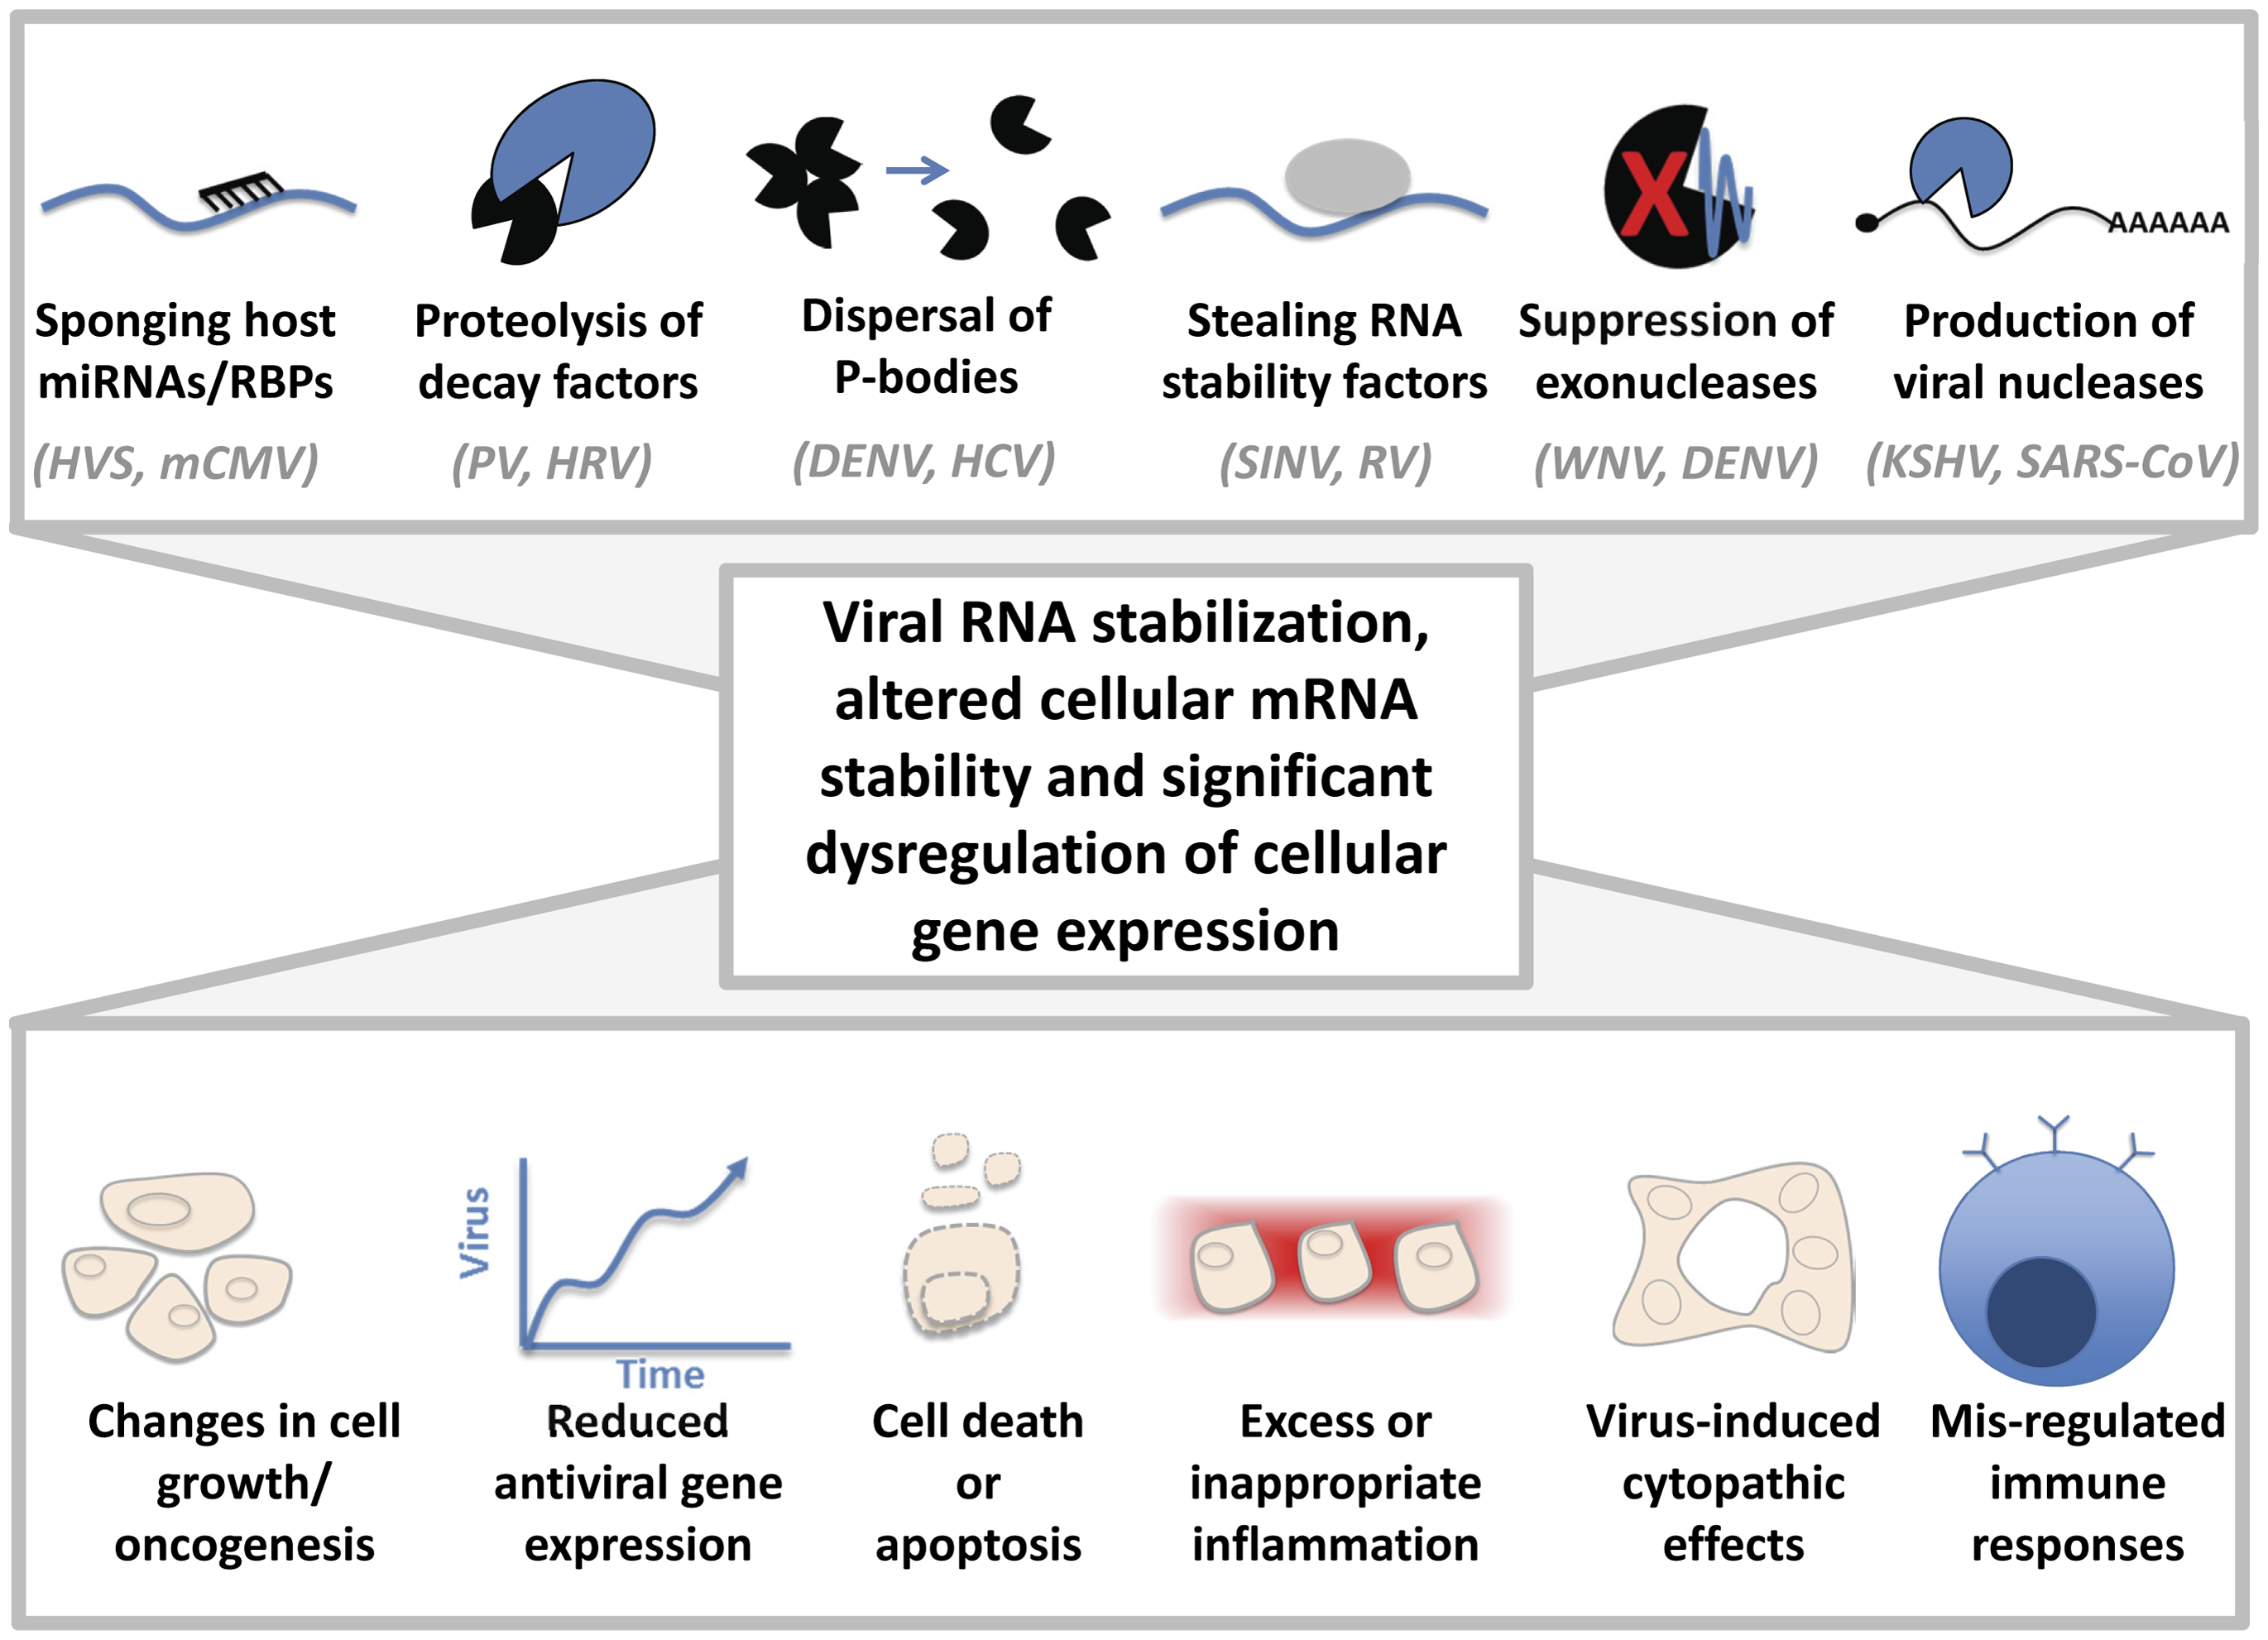 Cytoplasmic viruses may induce pathology by altering host mRNA decay pathways.